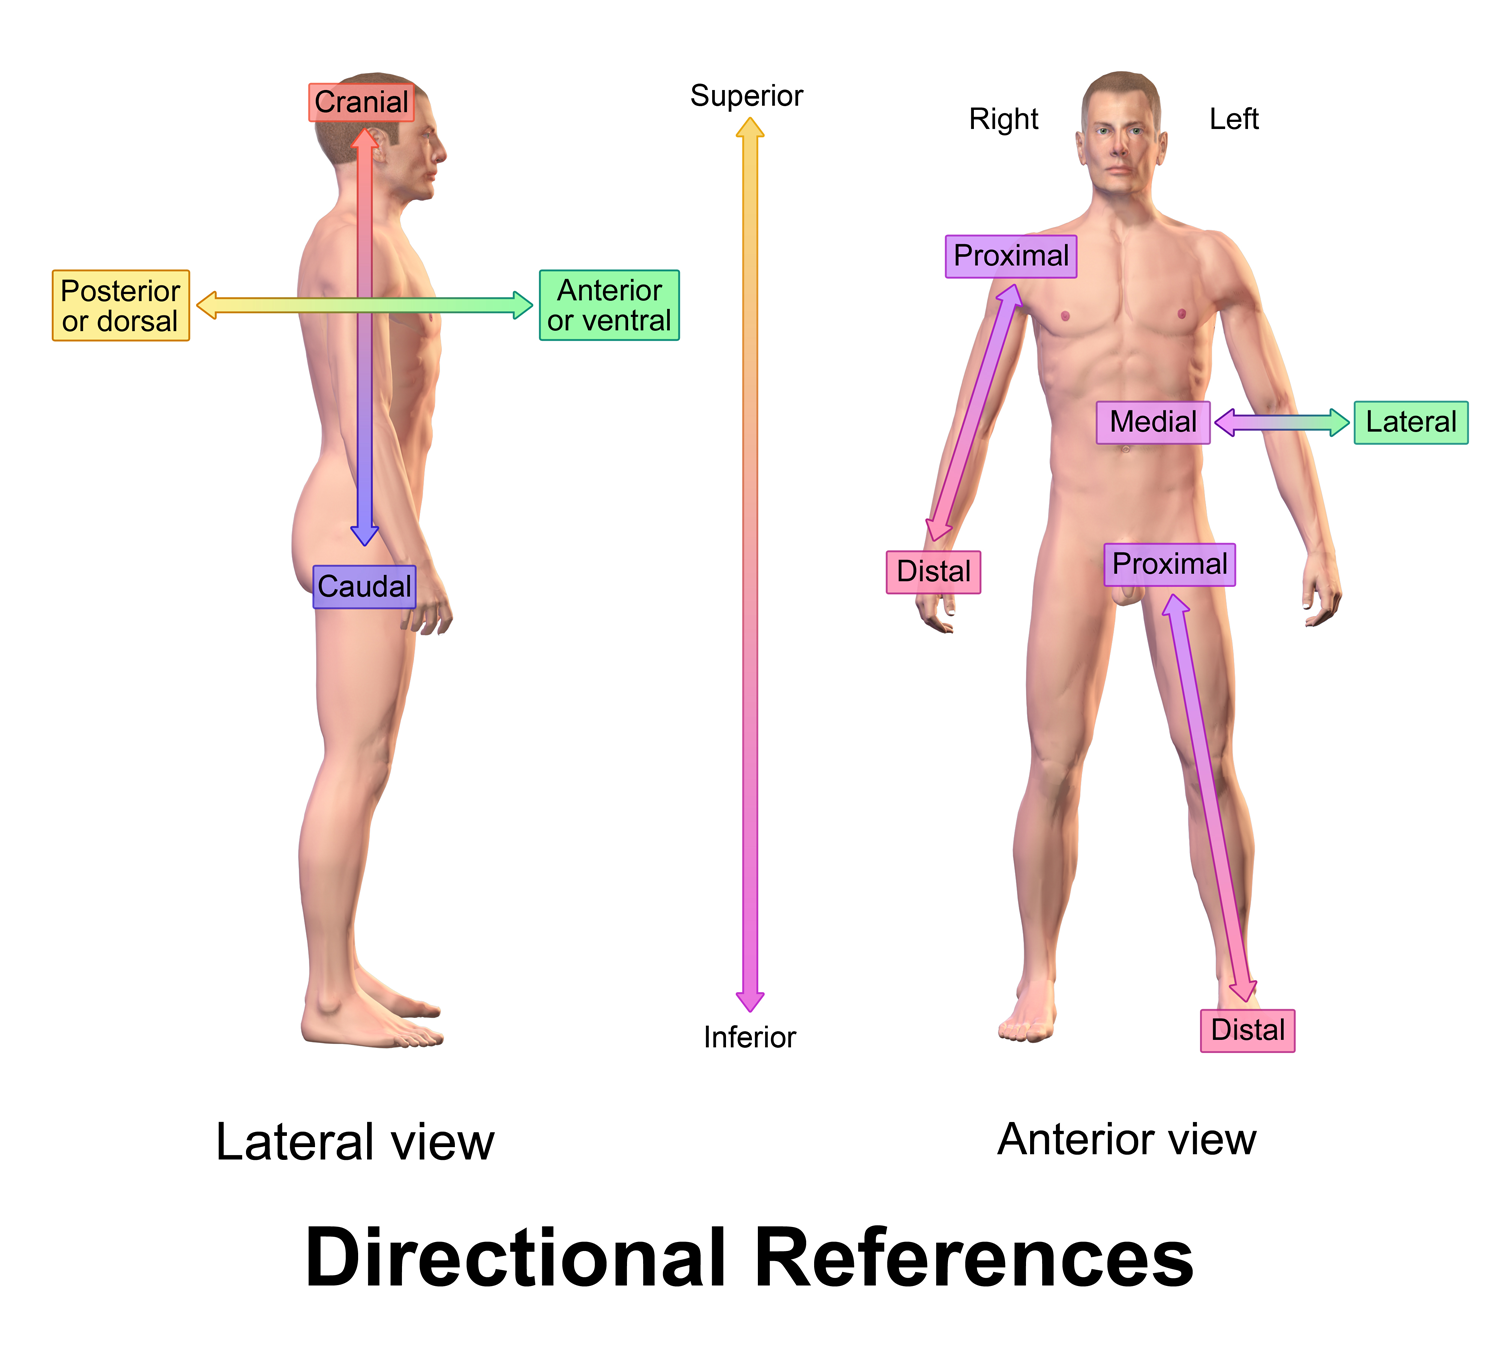 The Coding Station: ANATOMICAL DIRECTIONS